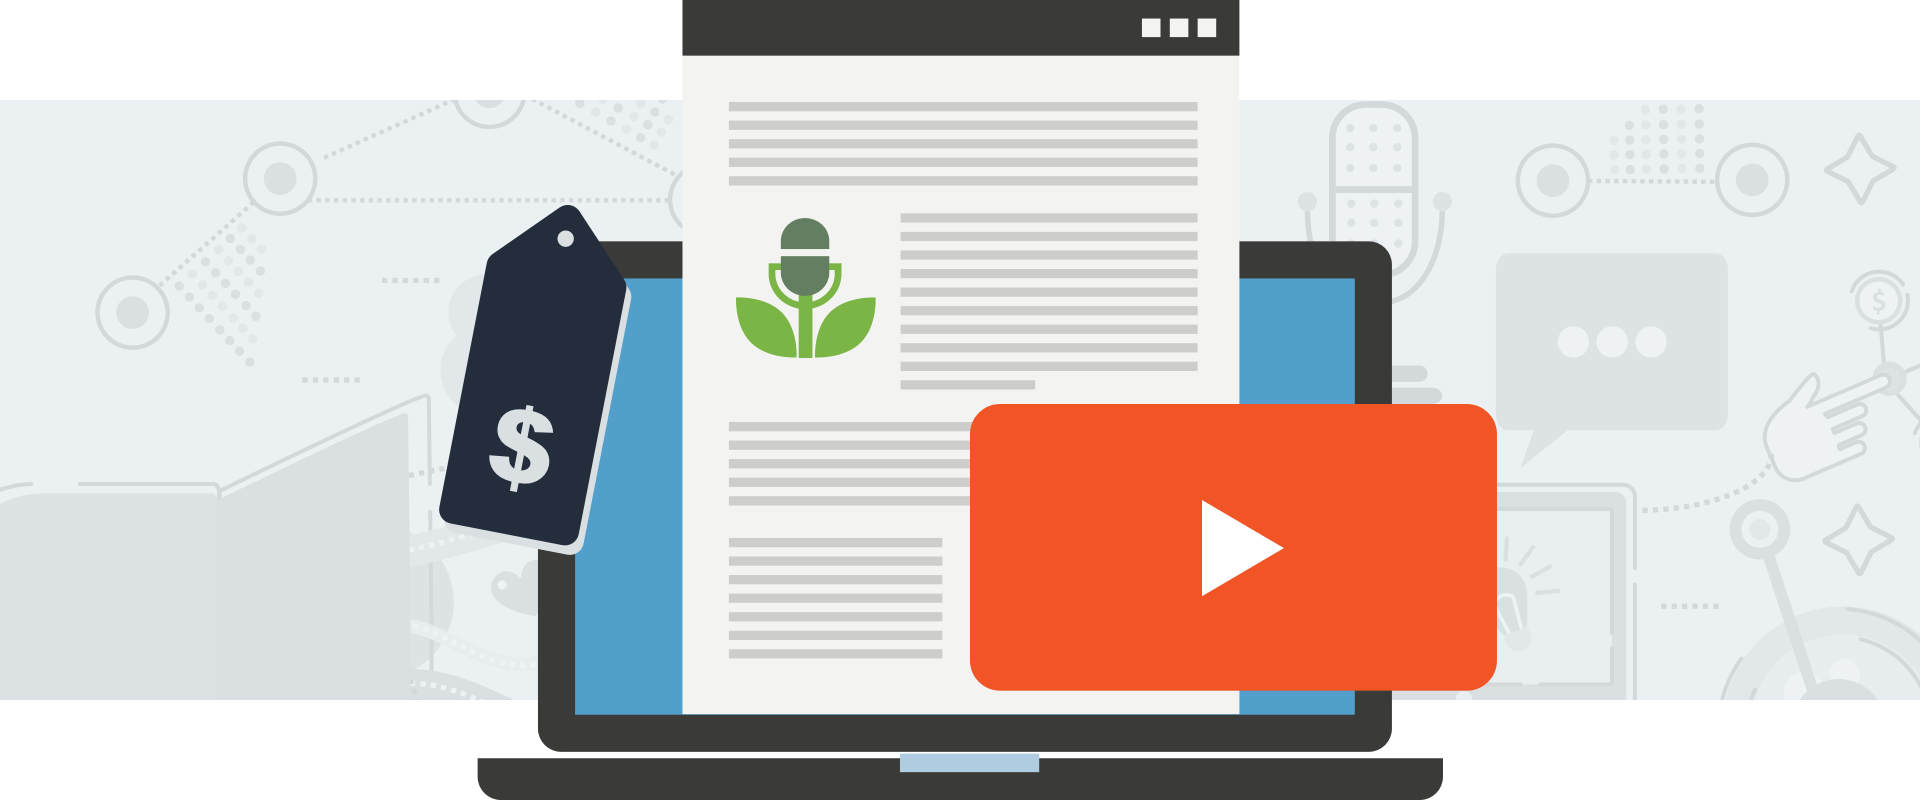 Blog posts, deals, and video content in Buzzsprout